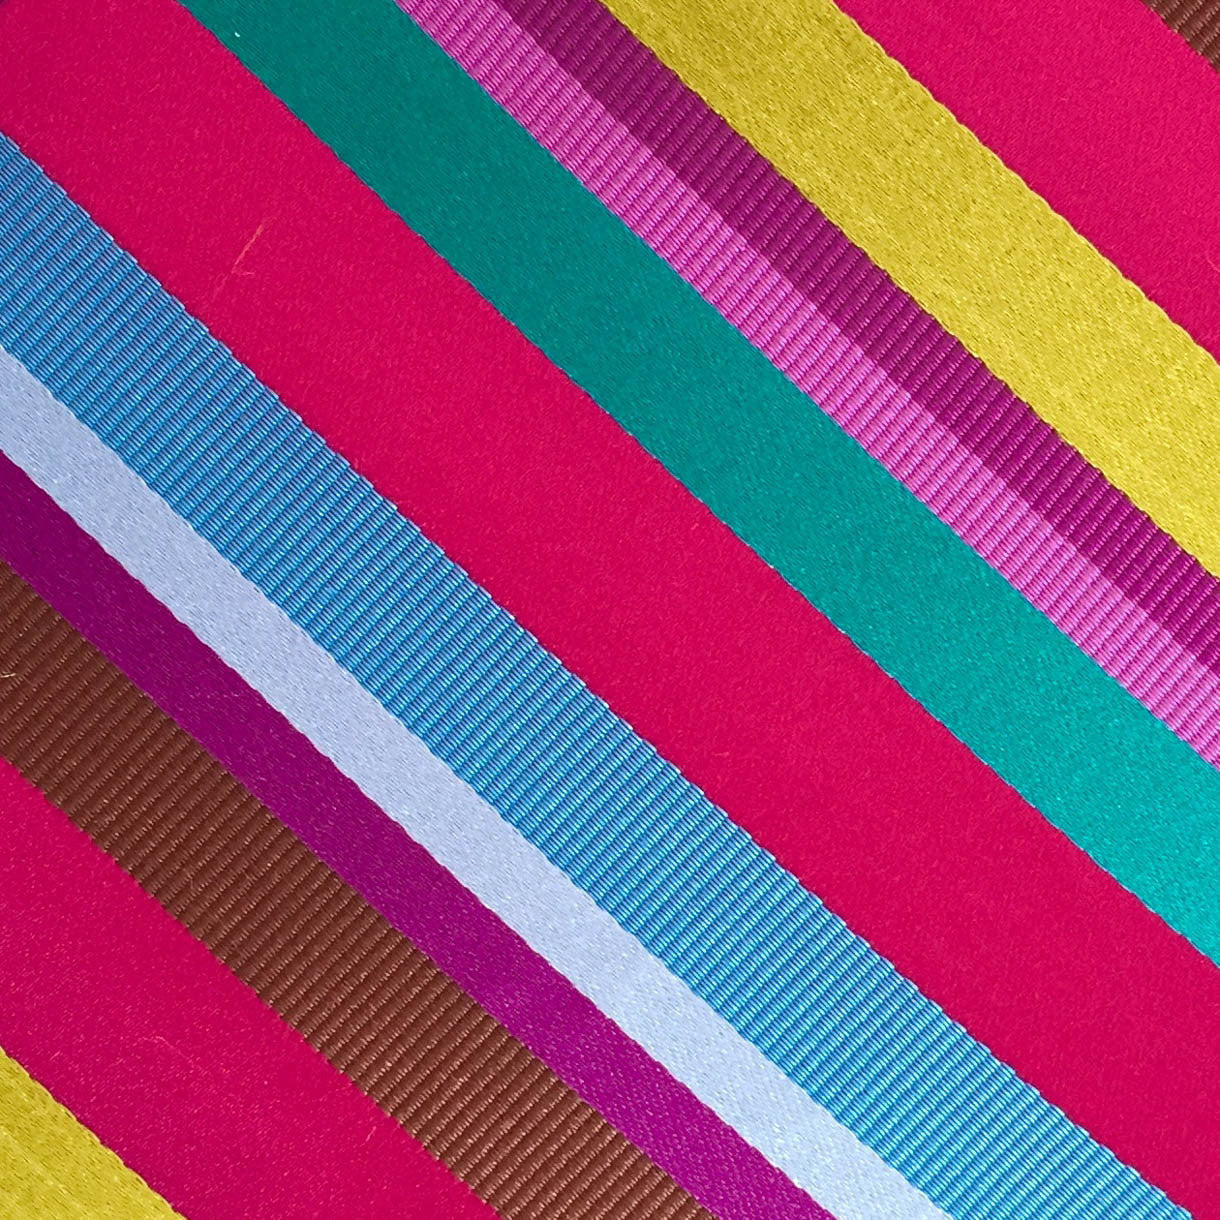 Bright Stripes Pink/Blue/Teal